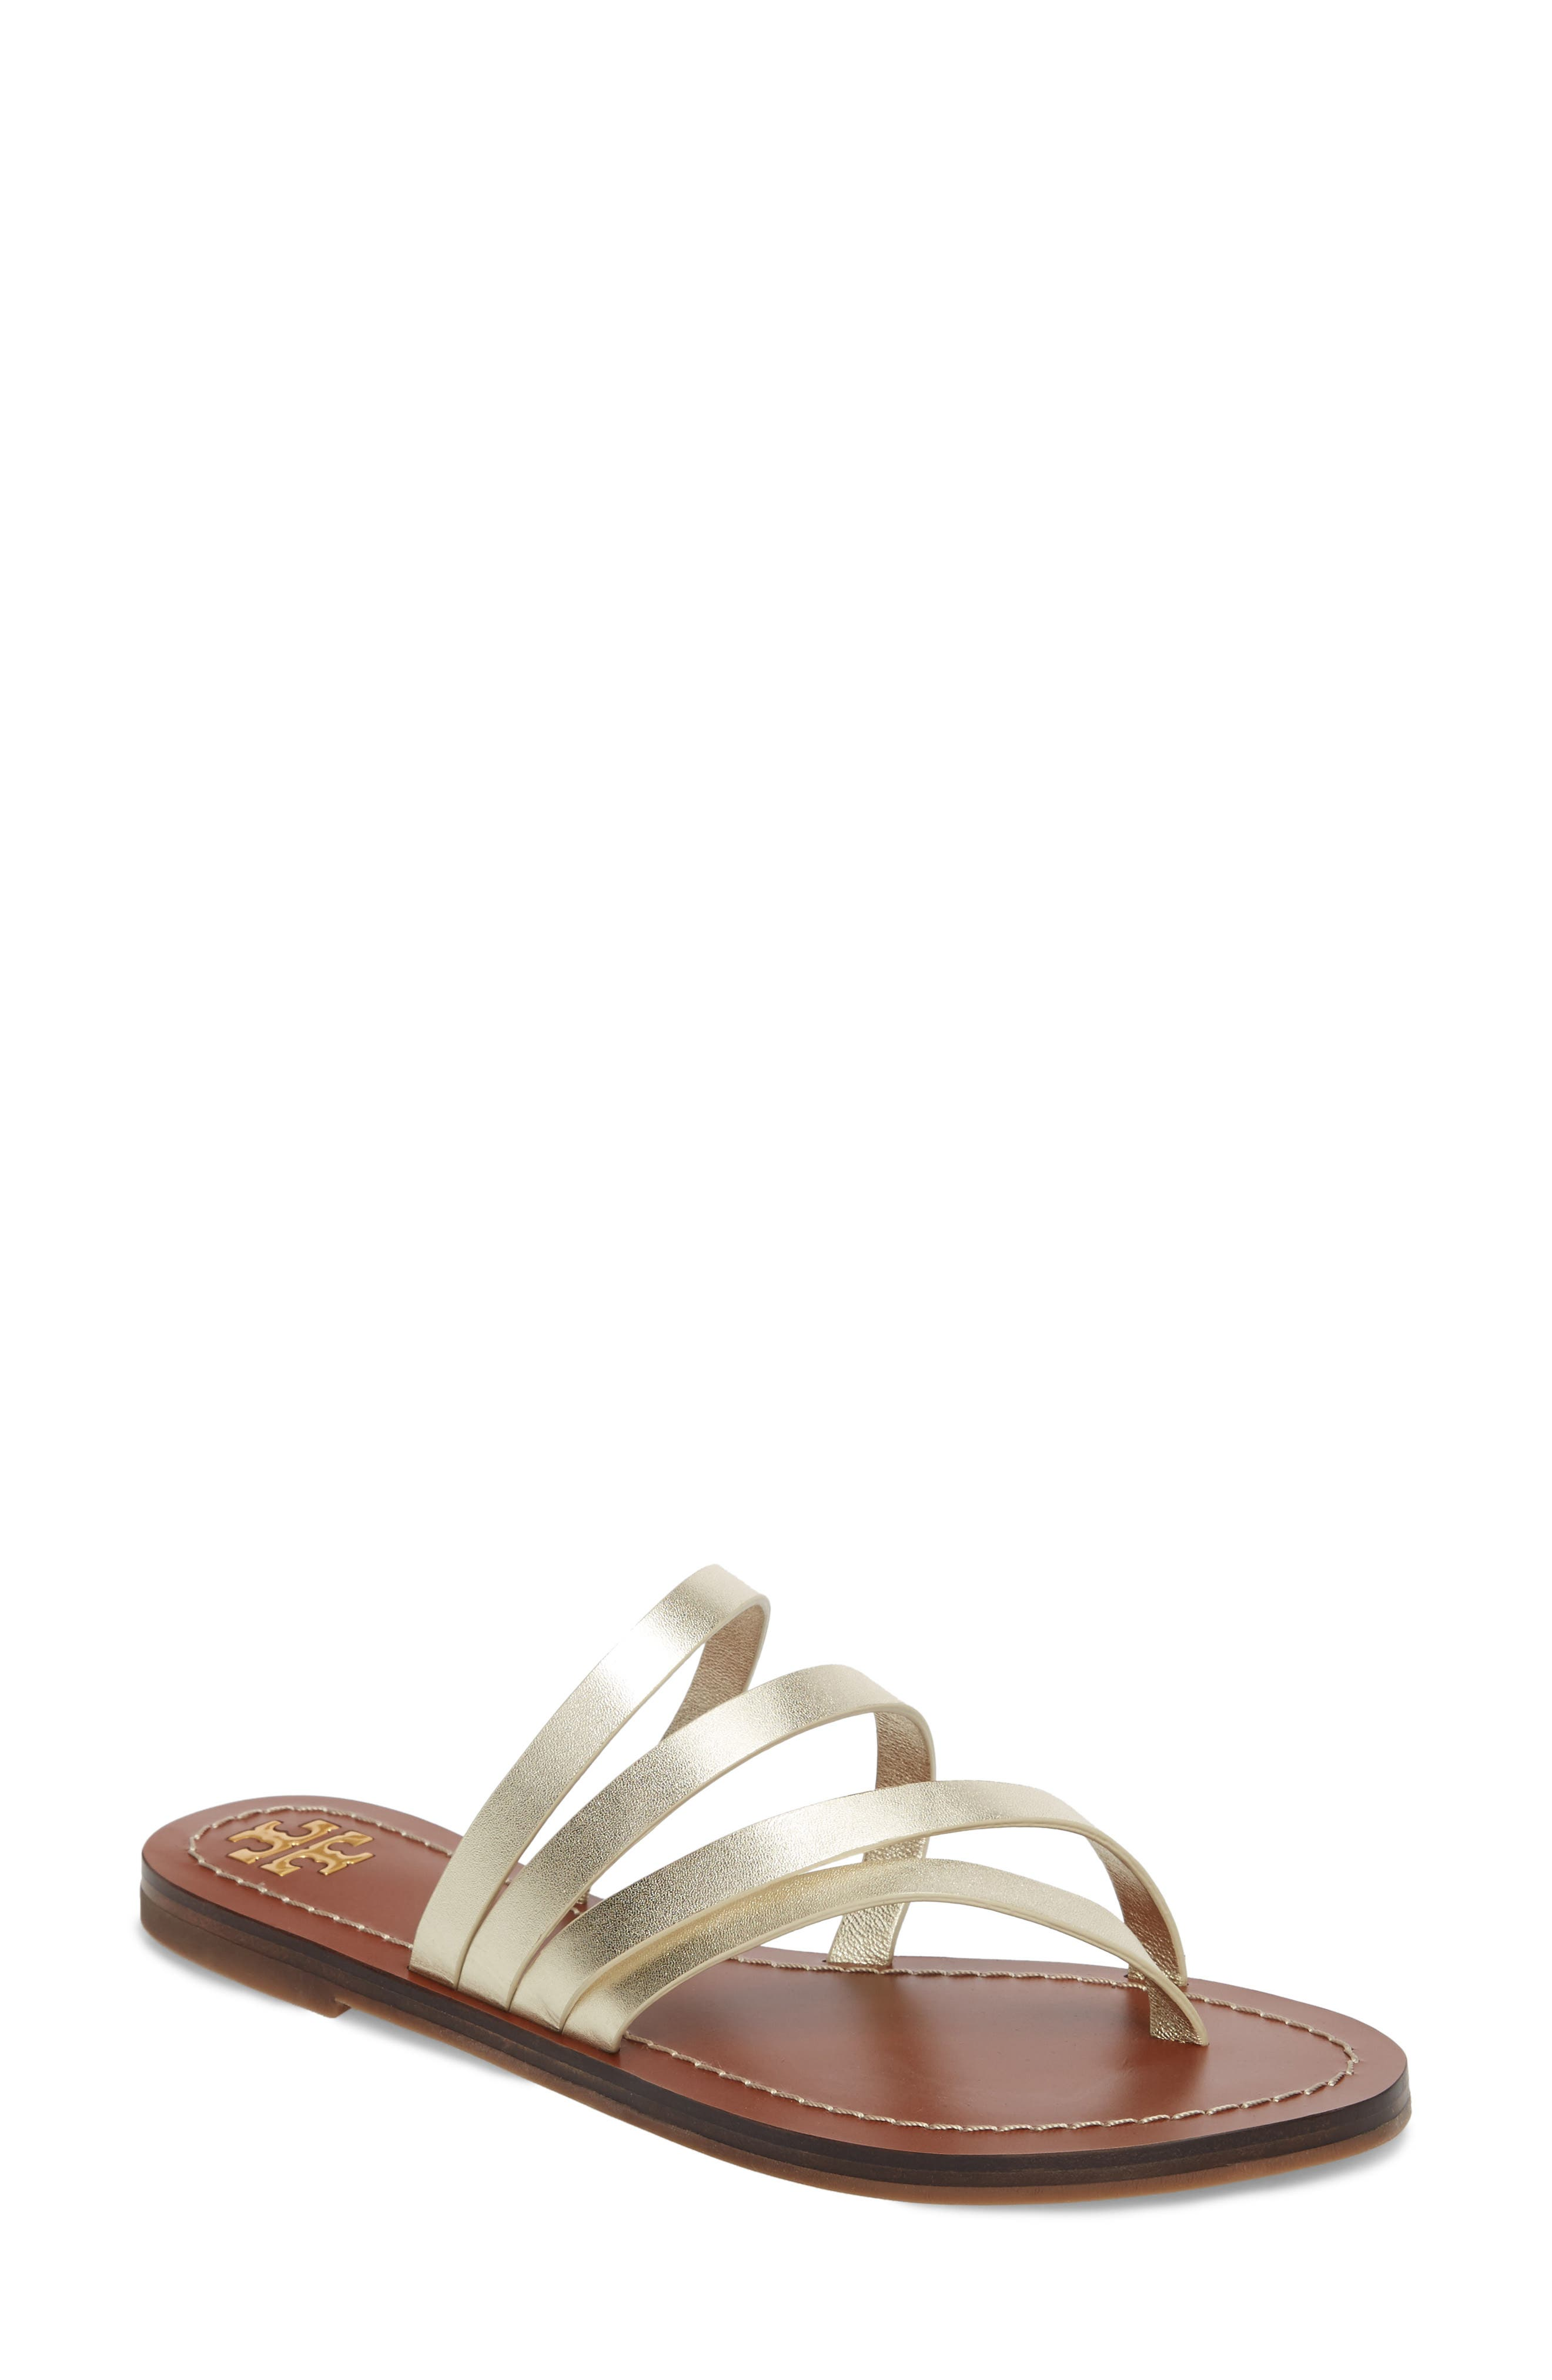 Patos Sandal,                         Main,                         color, Spark Gold